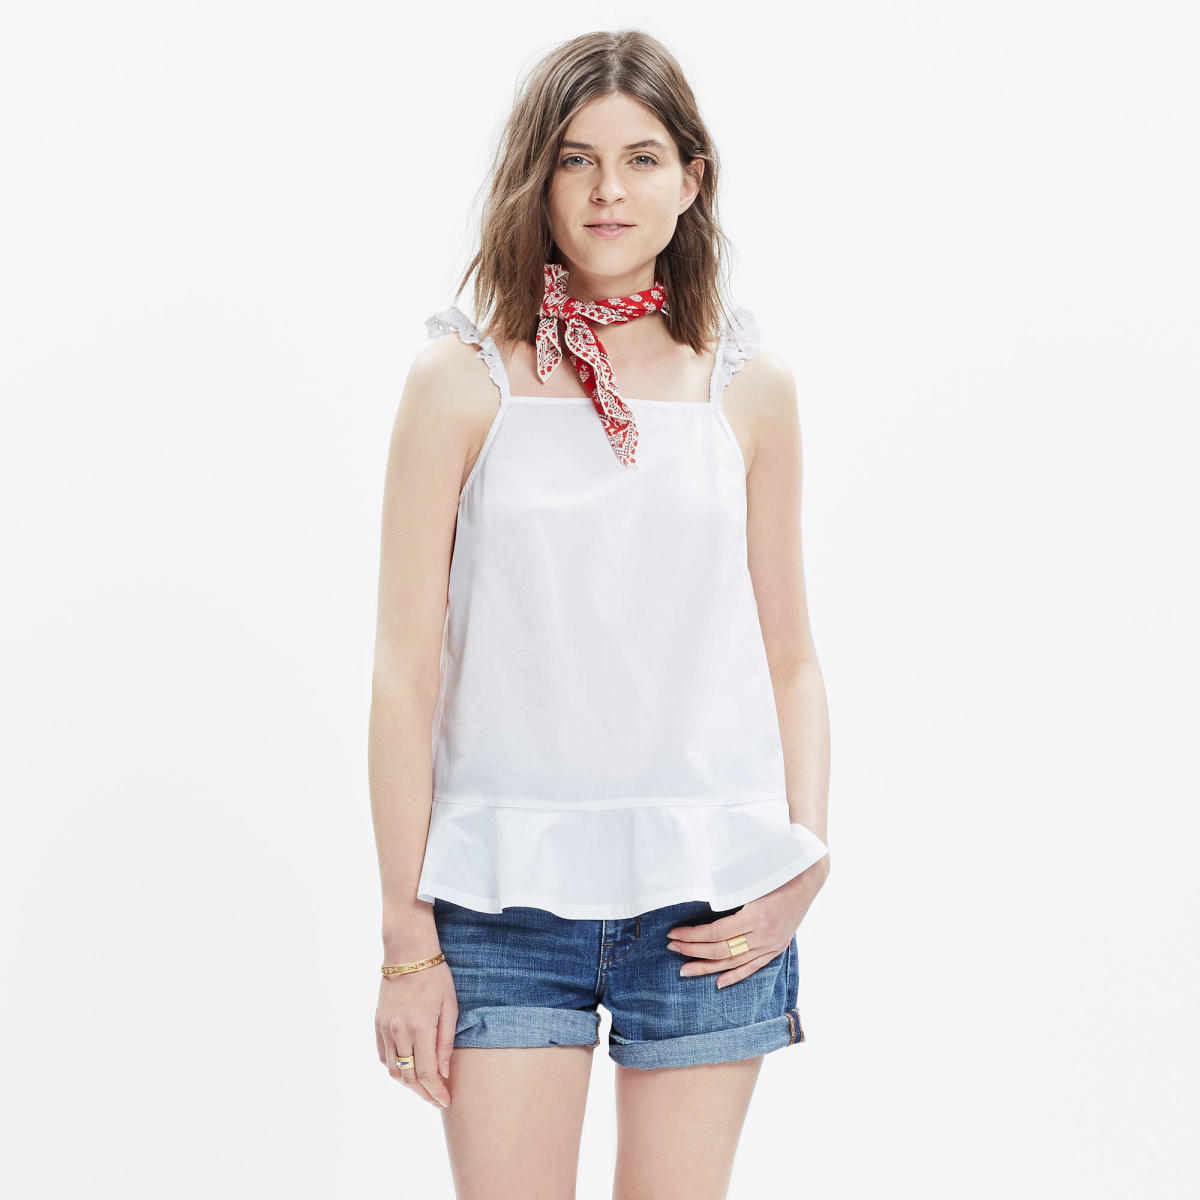 Eyelet Sunshower Top, on sale for $49.99, available at Madewell